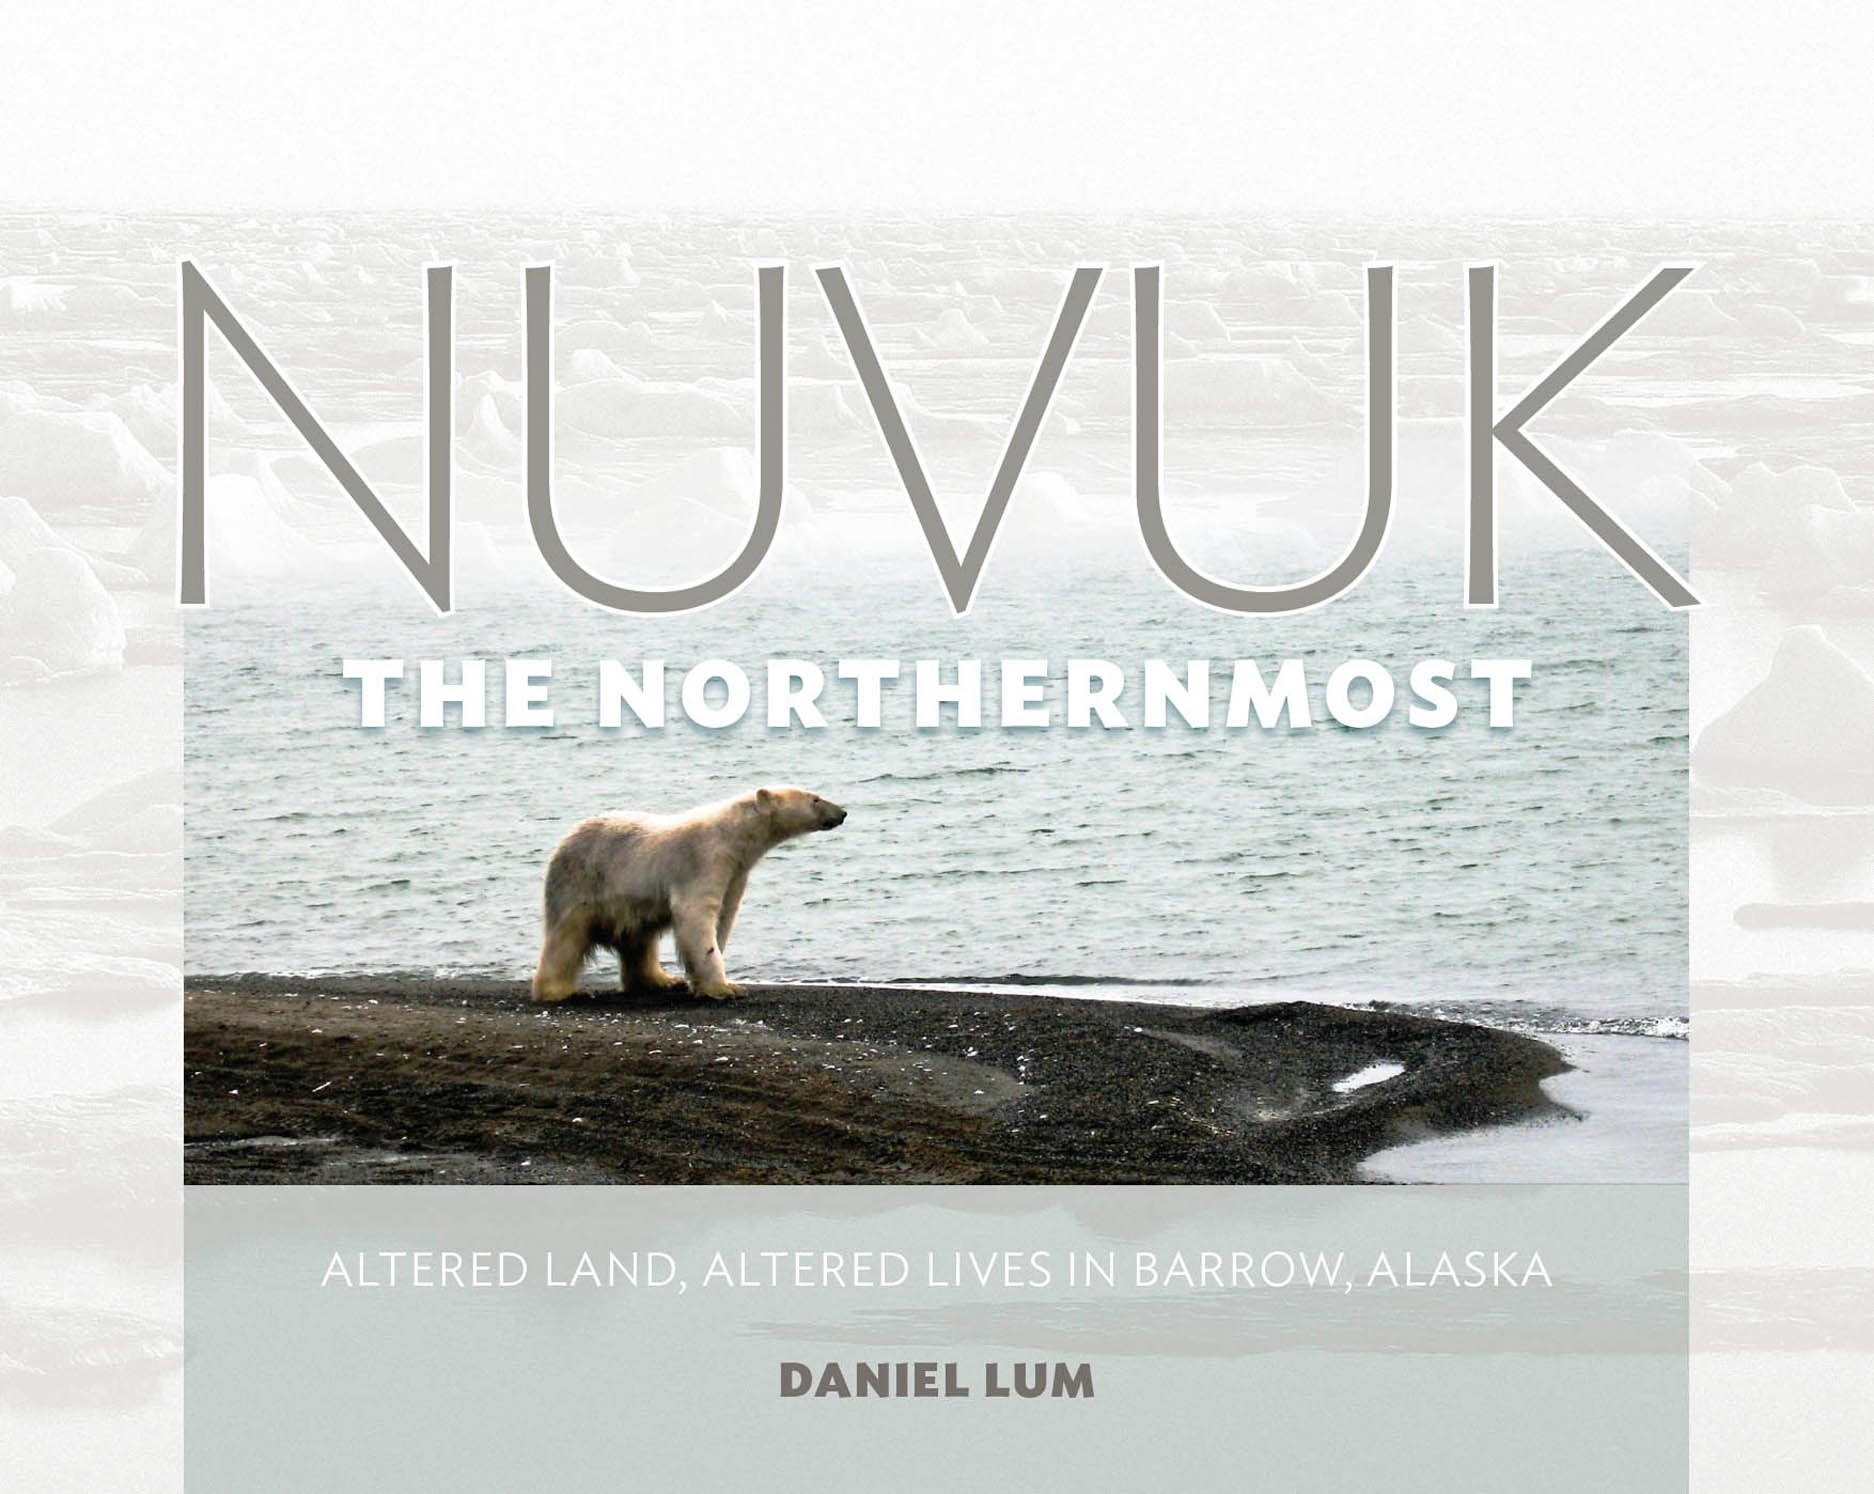 Nuvuk, the Northernmost